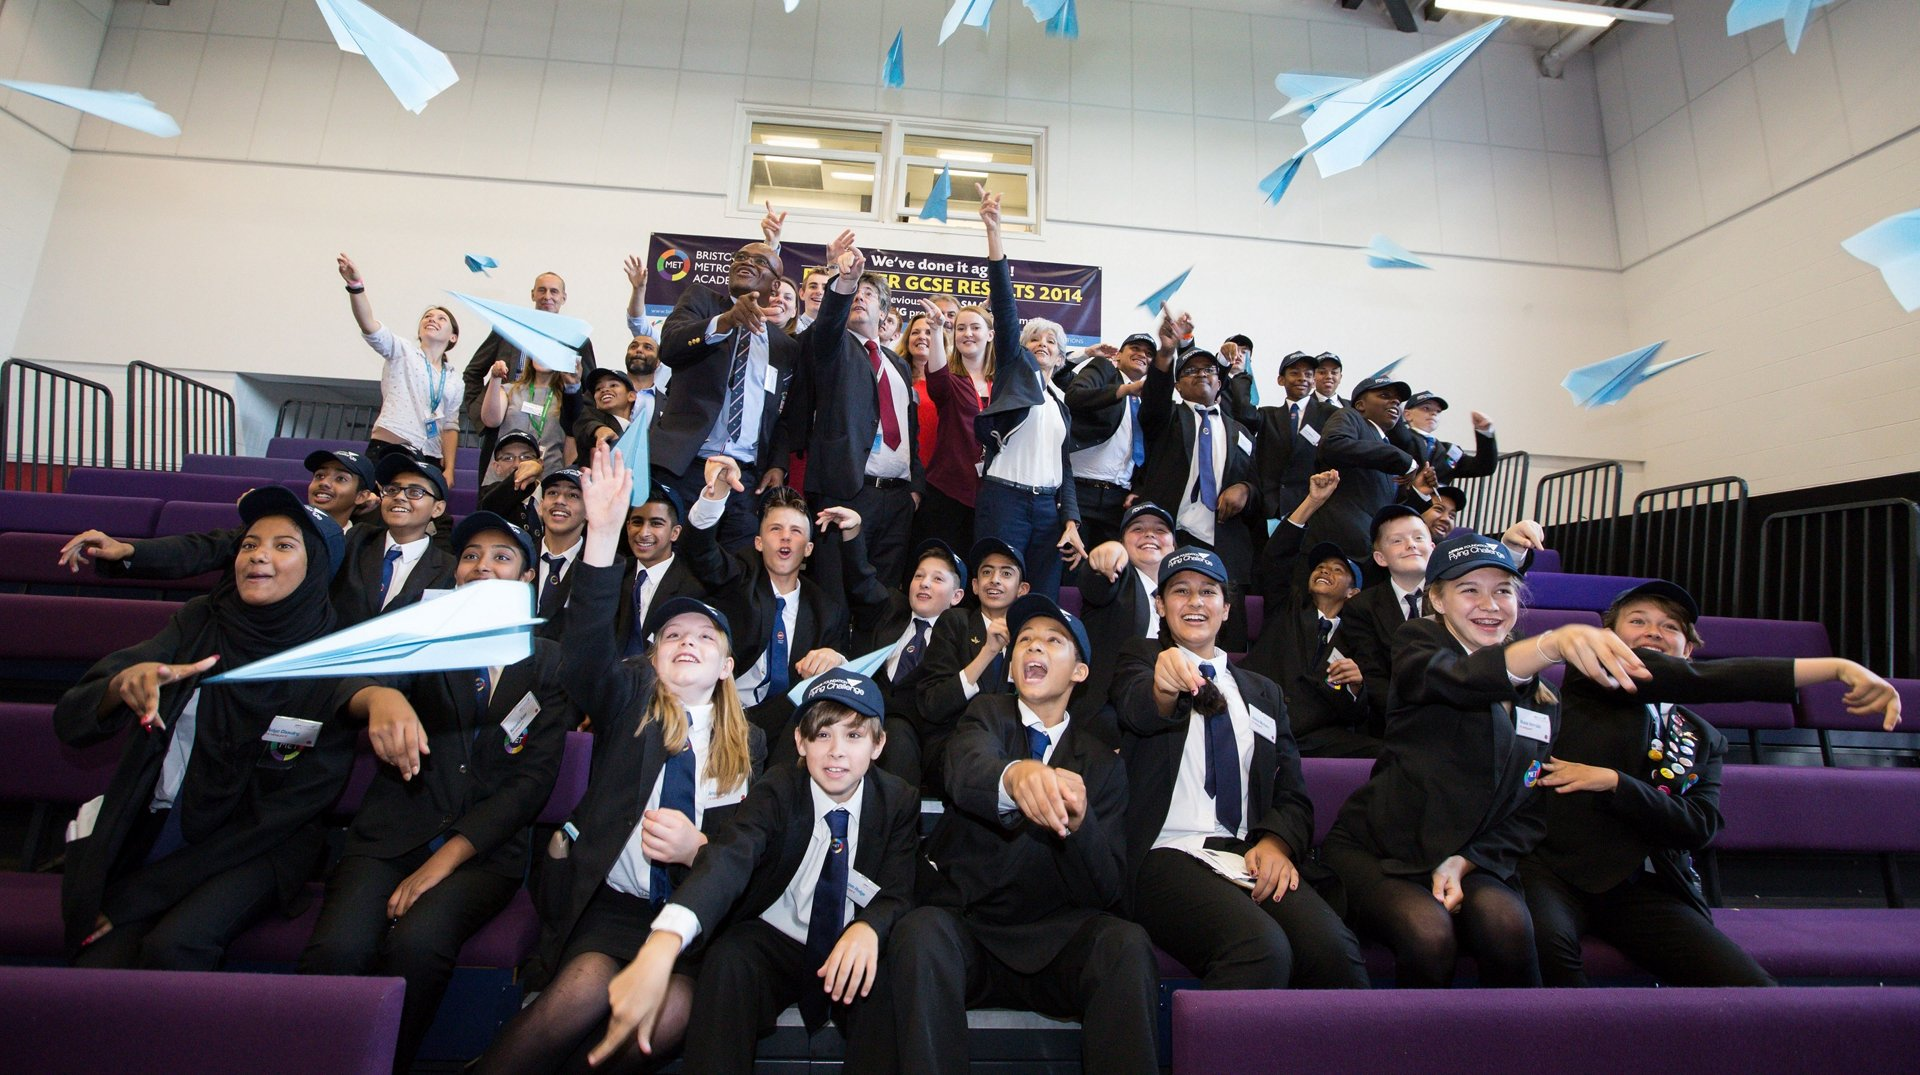 Launch of the Airbus Foundation Flying Challenge, Bristol Metropolitan Academy, Snowdon Road, Fishponds, Bristol.